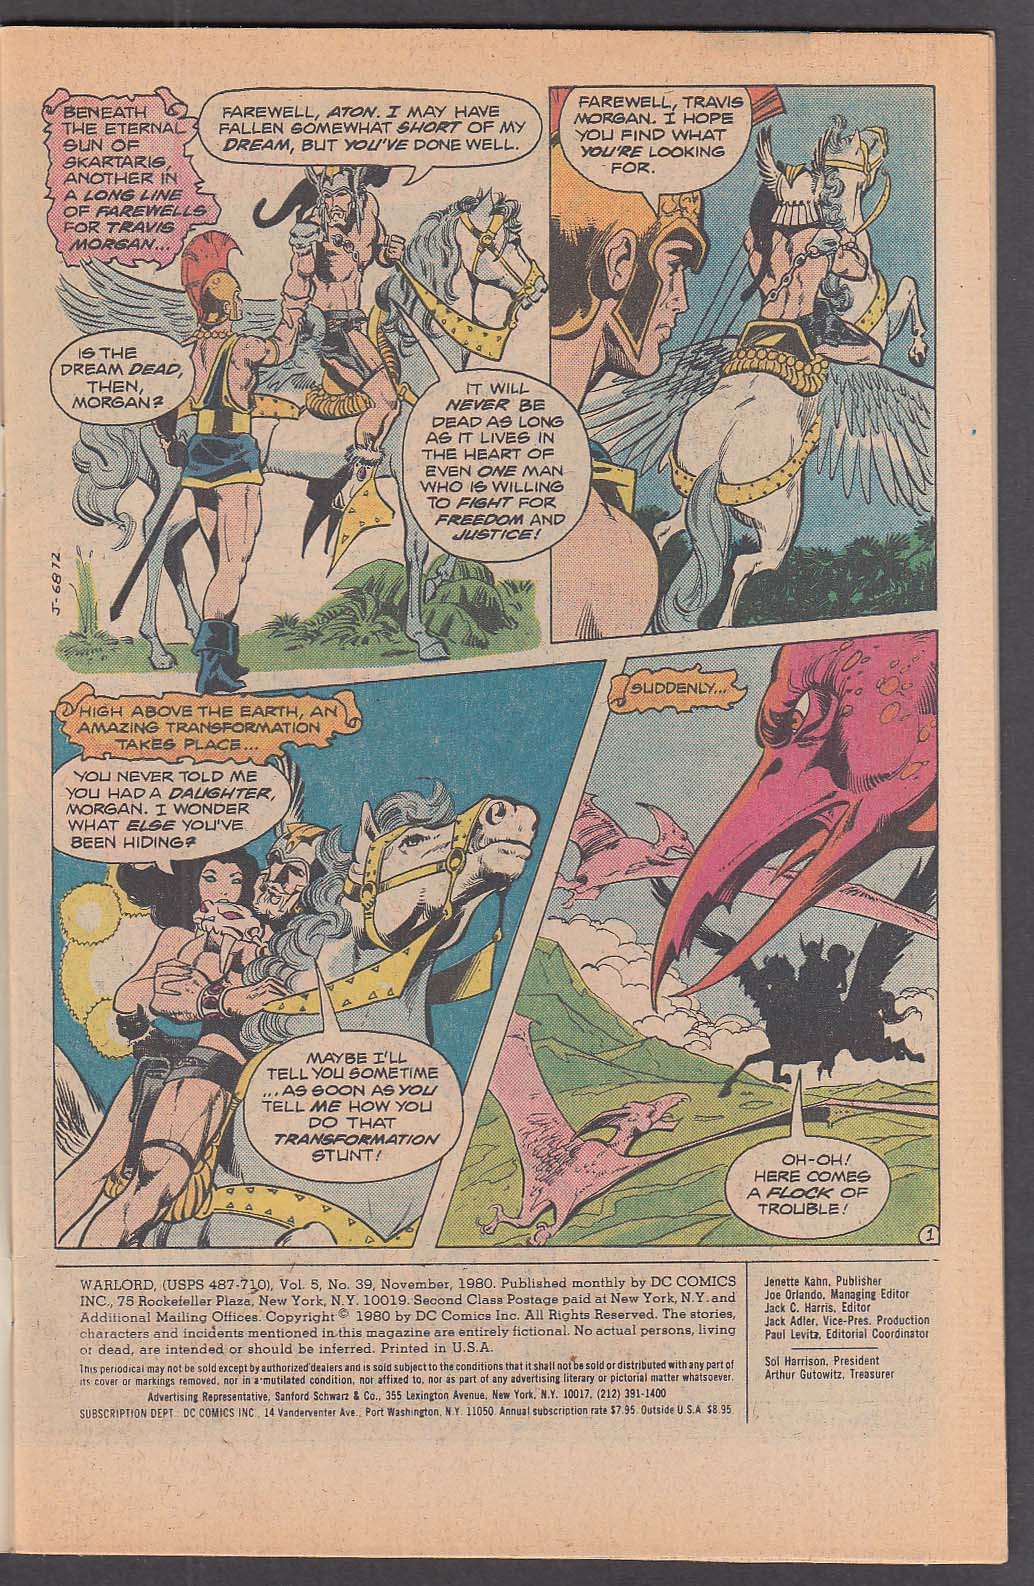 Image for WARLORD #39 DC comic book 11 1980